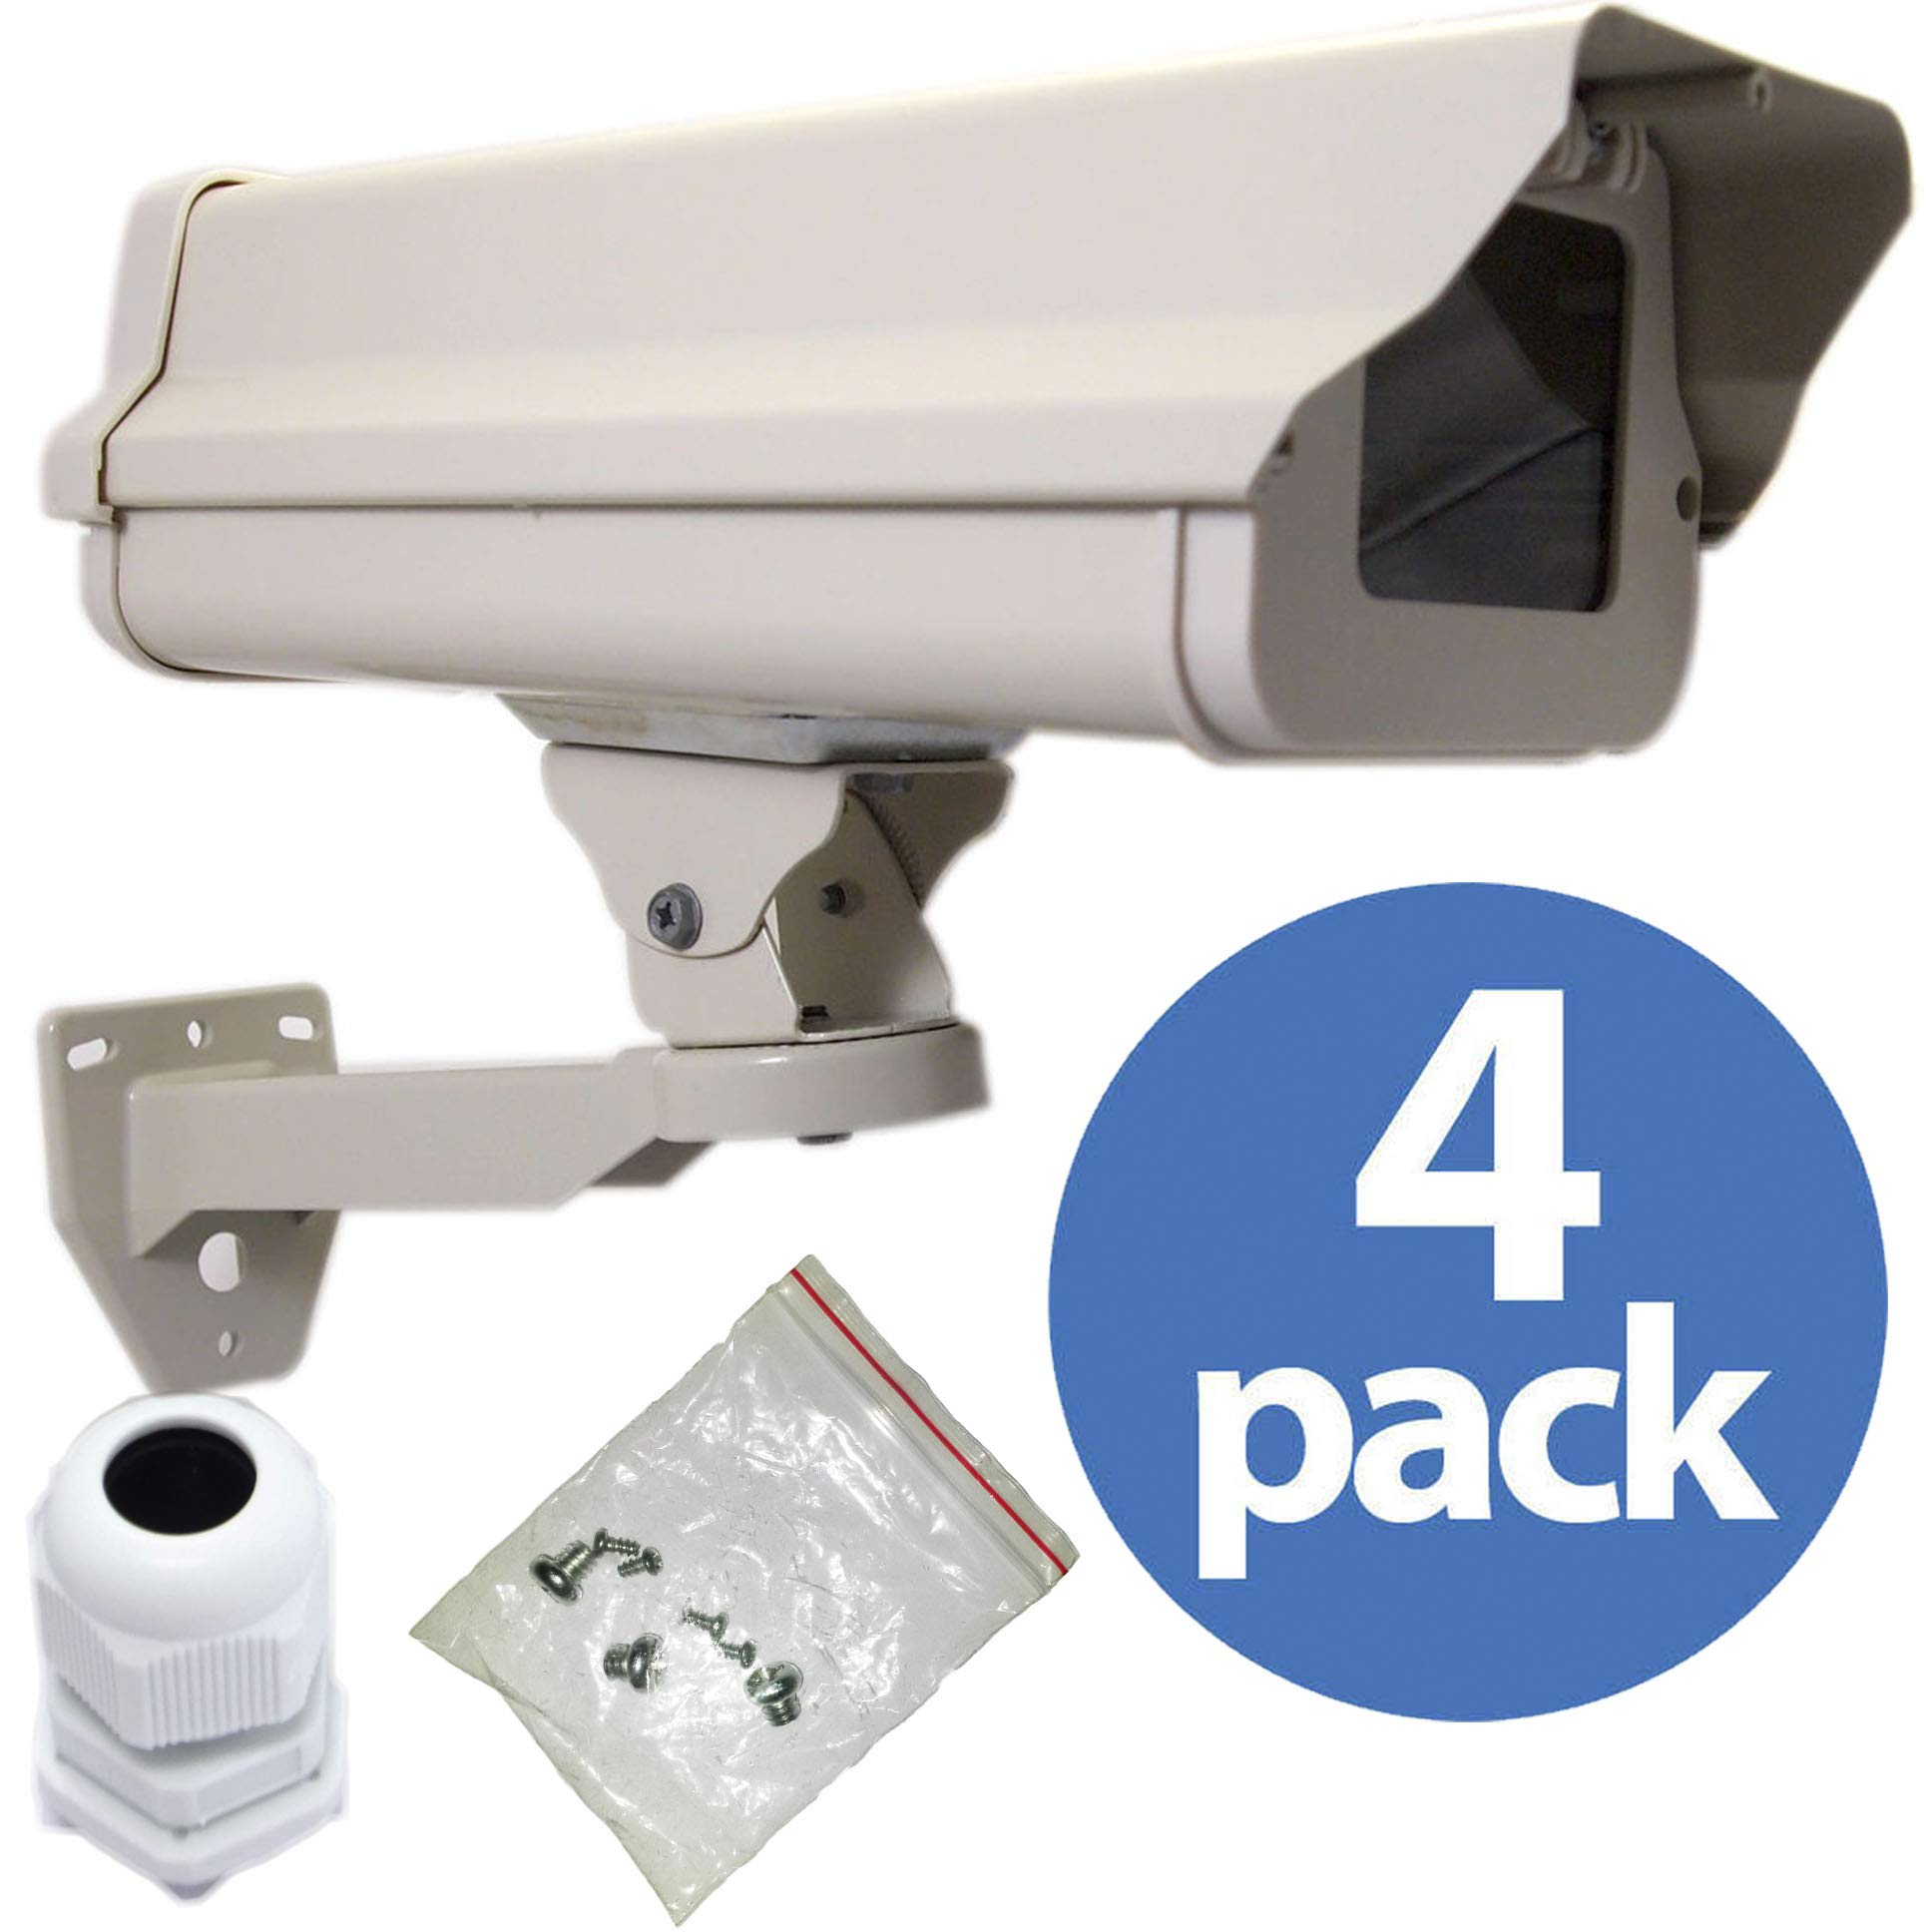 VENTECH 4 PACK Outdoor Weatherproof Heavy Duty Aluminum CCTV housing Security Surveillance Camera Housing camera Mount Enclosure with Bracket by VenTech